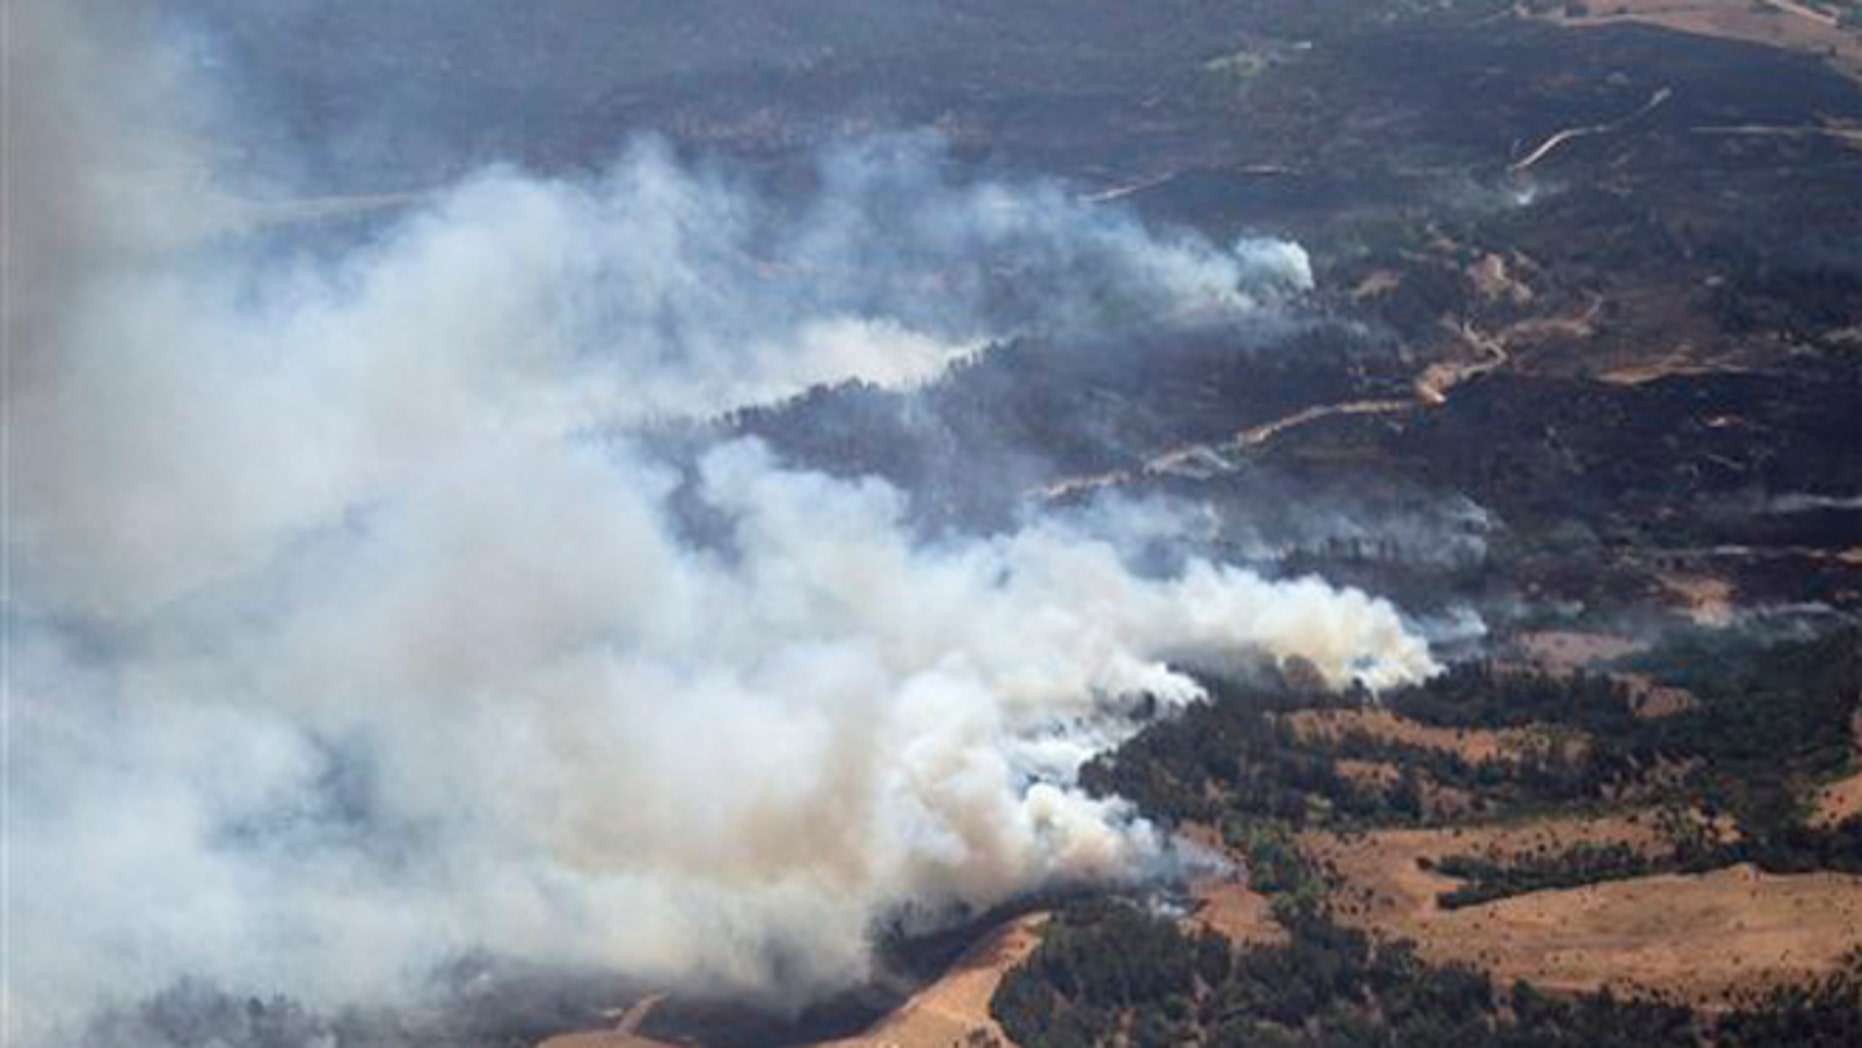 July 24, 2012: Plumes of smoke rise from the Fairfield Creek fire near Springview, Neb.